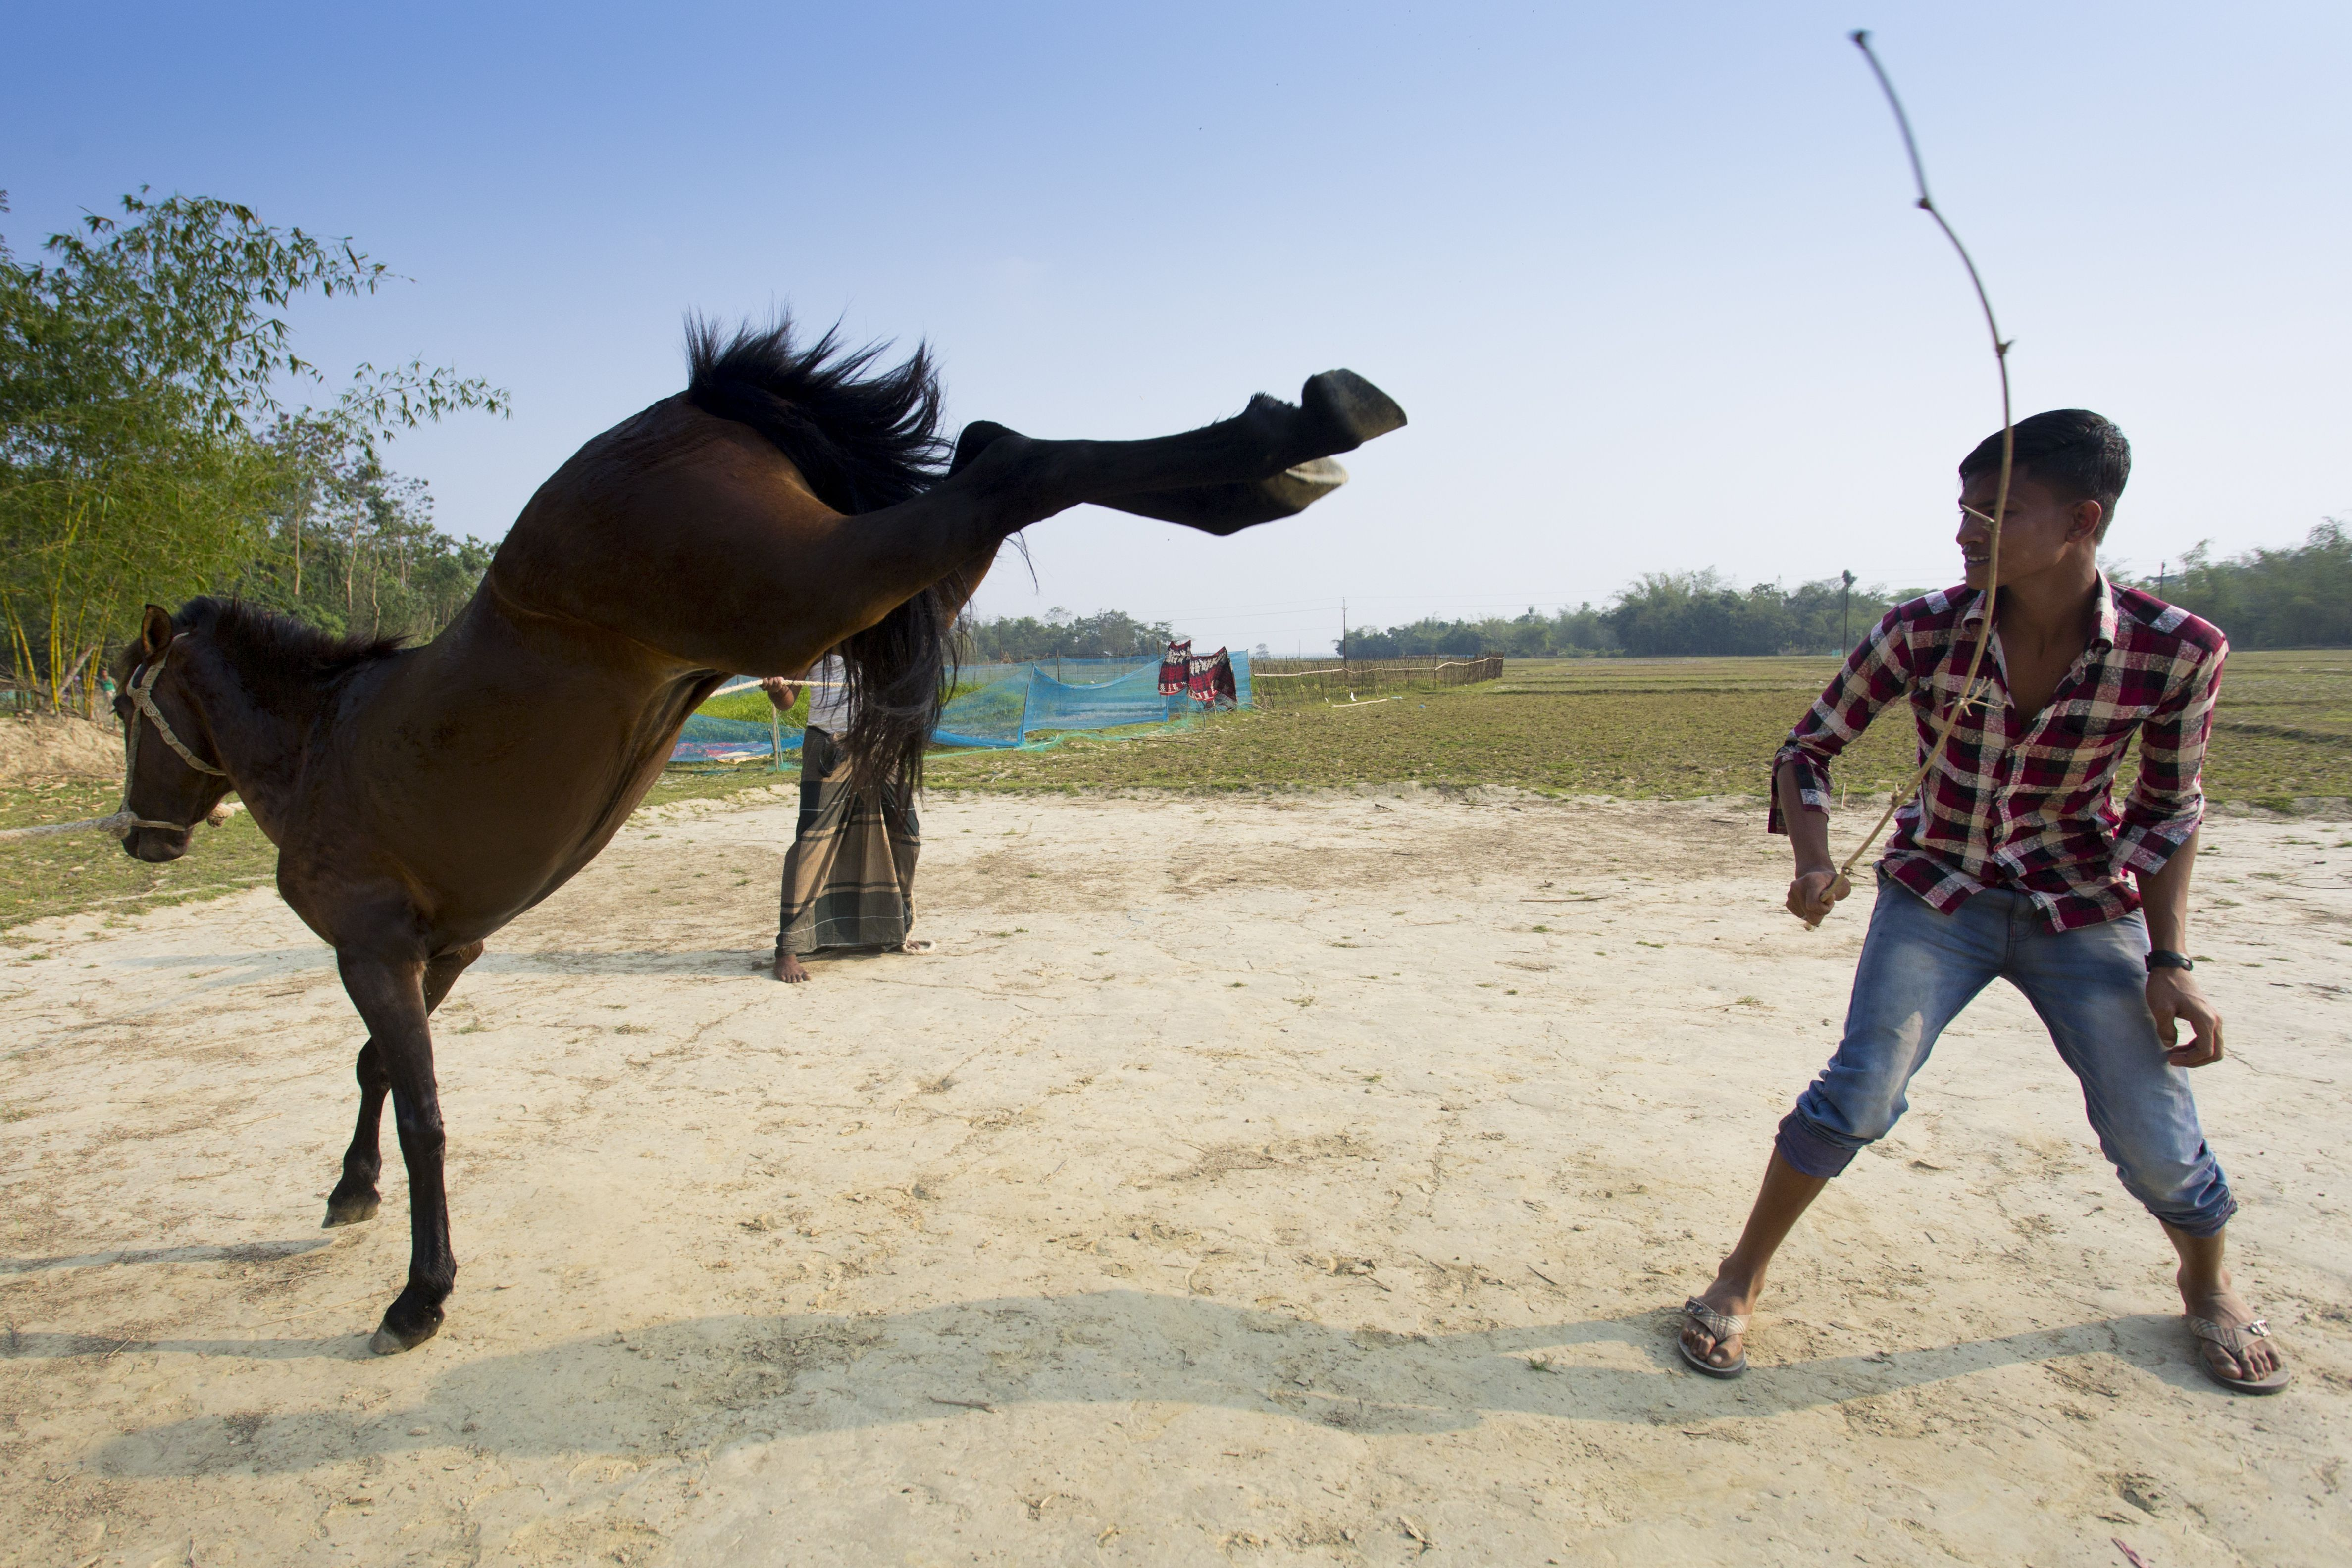 The horse is being trained. by Jahangir Alam Onuchcha